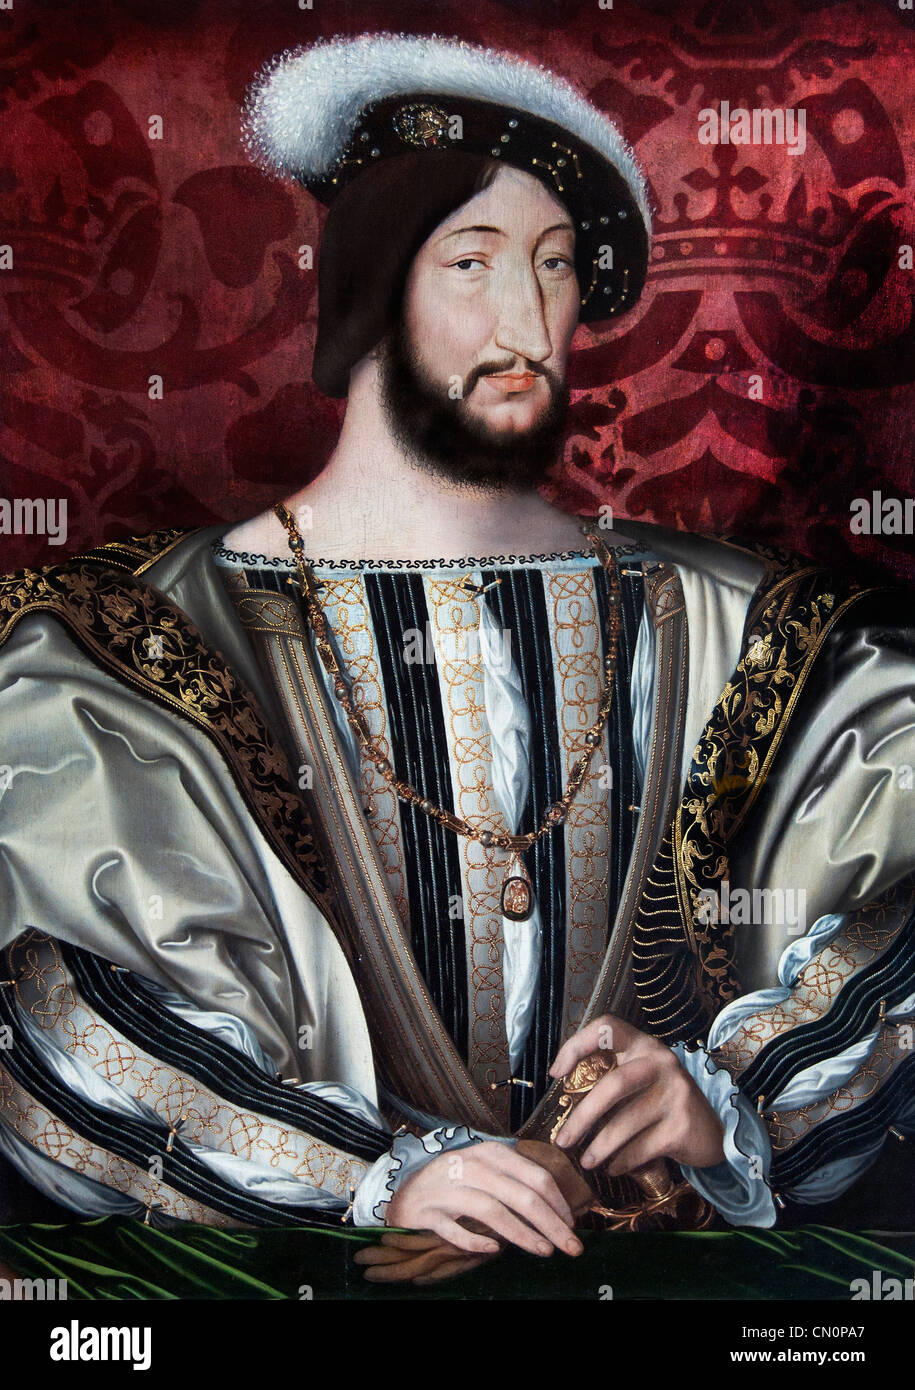 Francois I Roi de France King of France by Jean Clouet French France - Stock Image